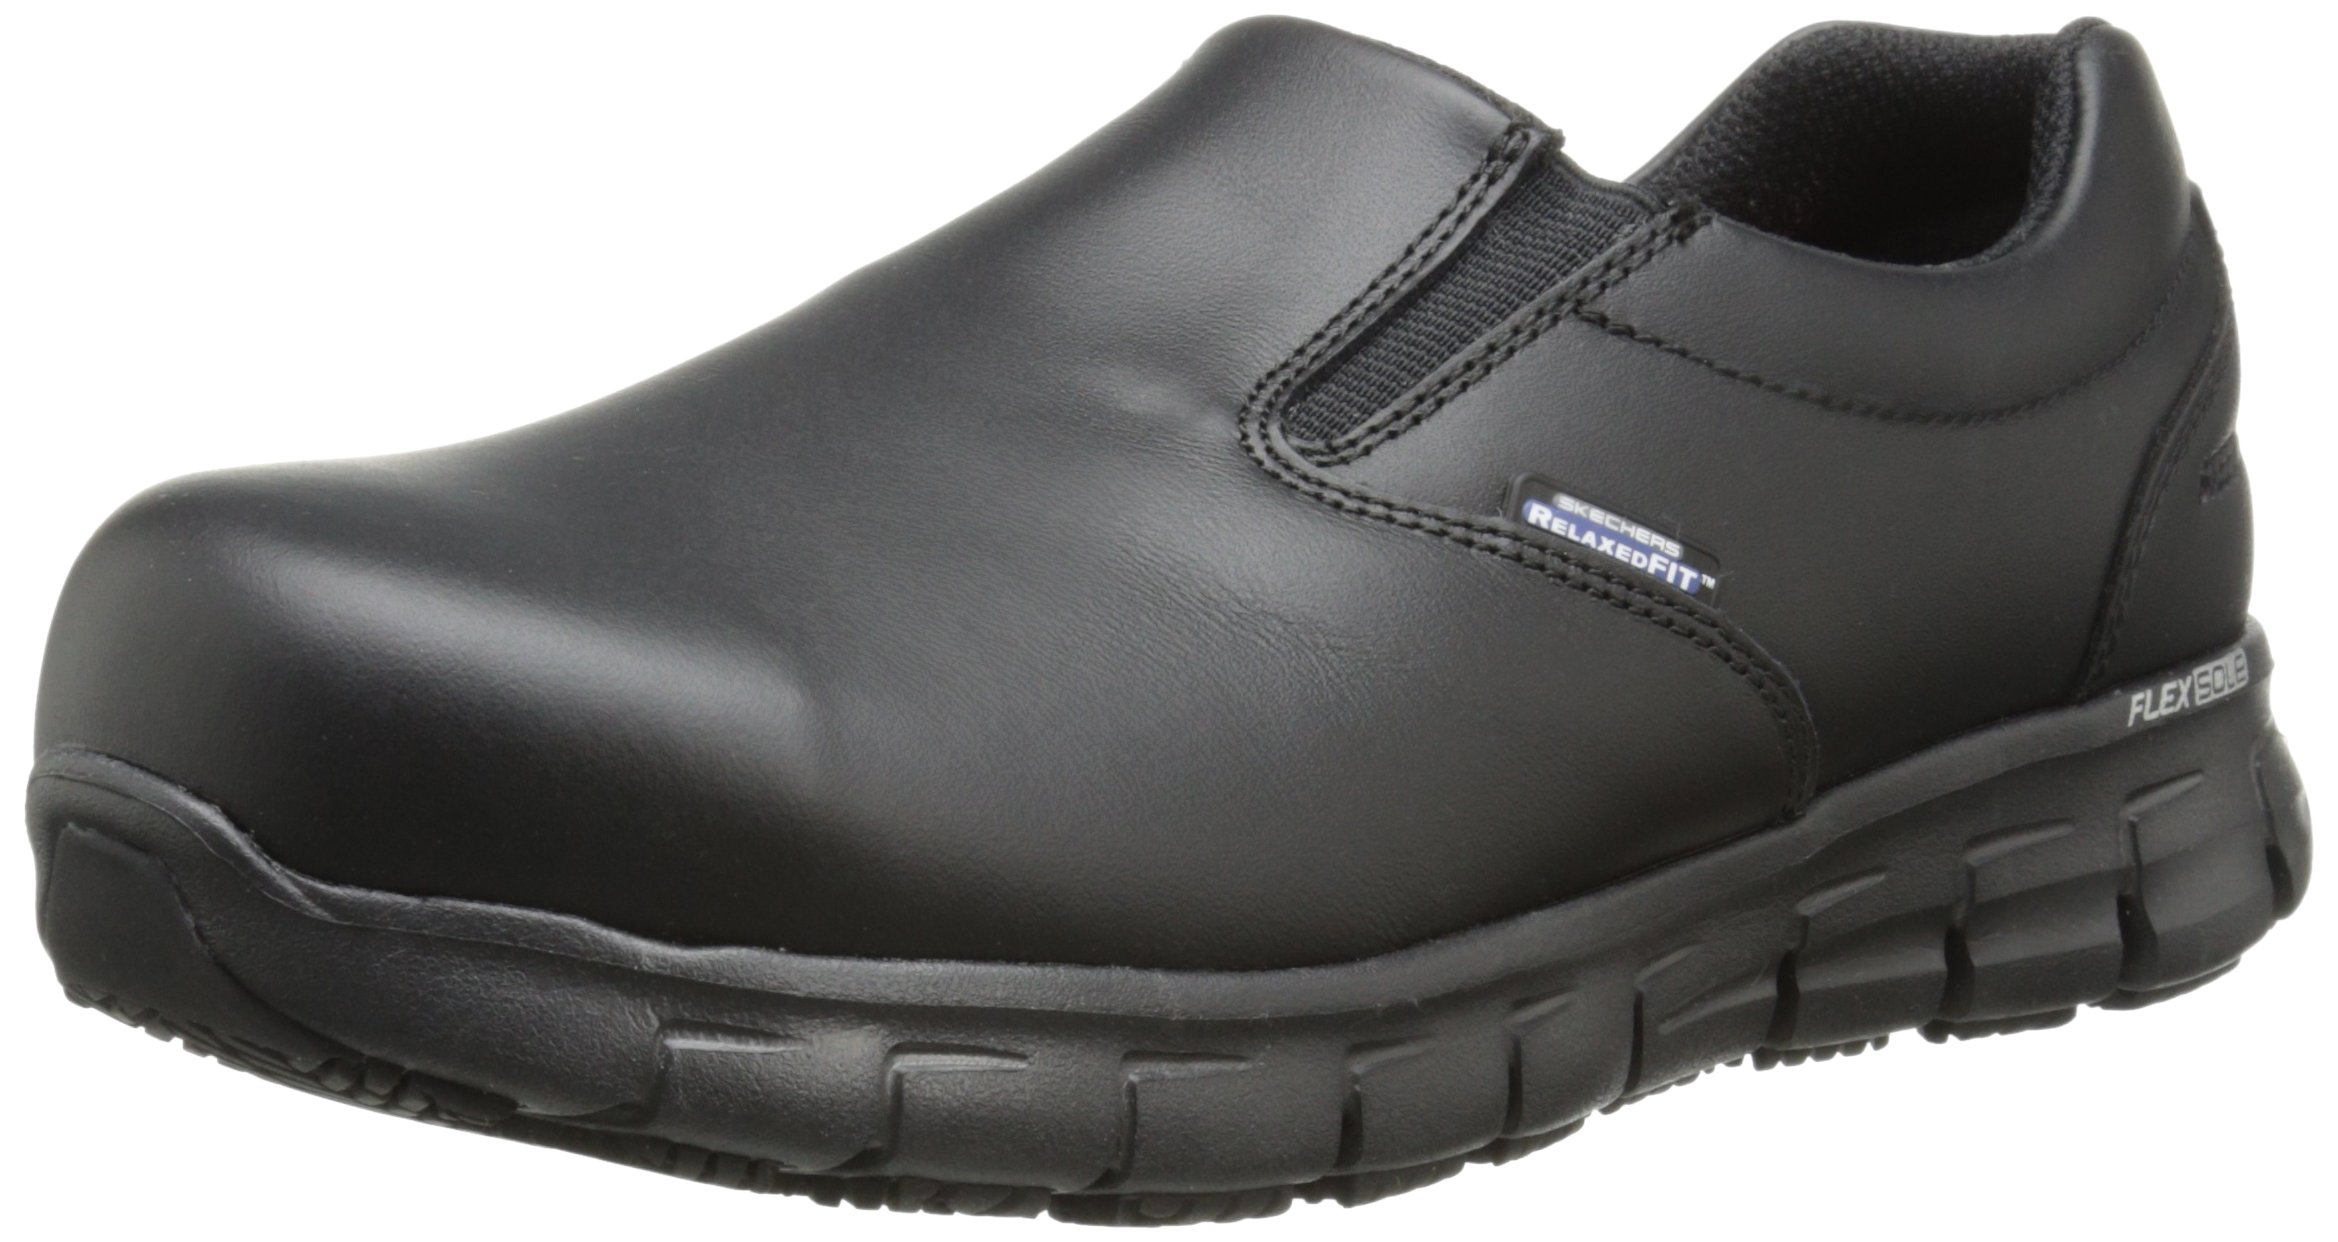 Skechers for Work Women's Sure Track Vonn Slip-On,Black,8 M US